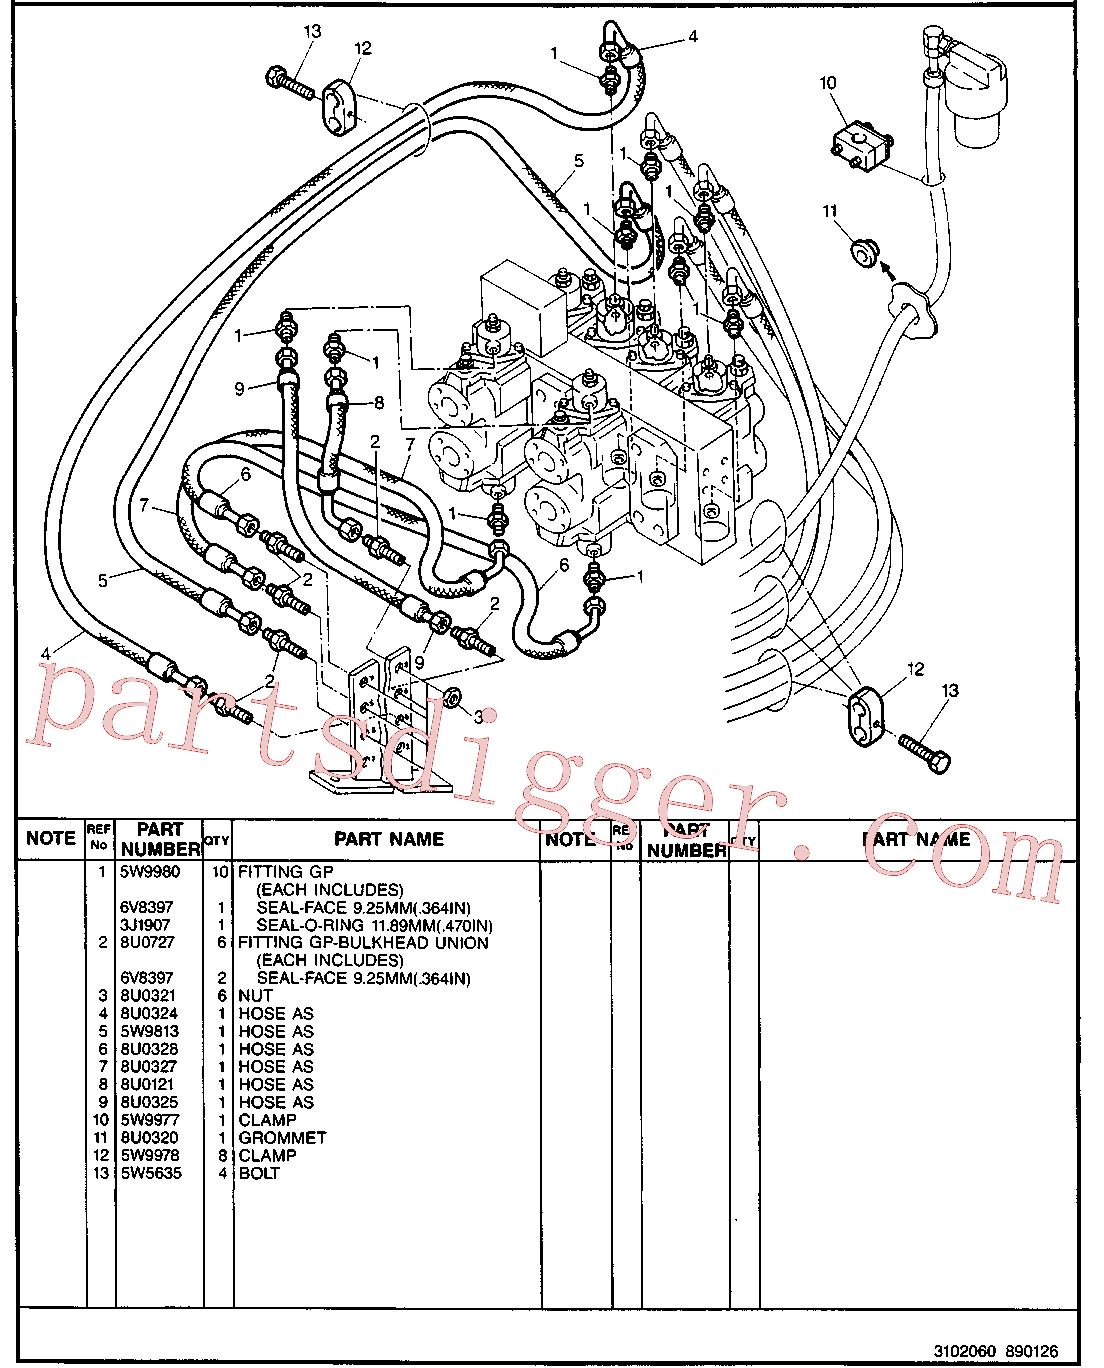 CAT 8U-0727 for 213B Excavator(EXC) hydraulic system 5W-9802 Assembly